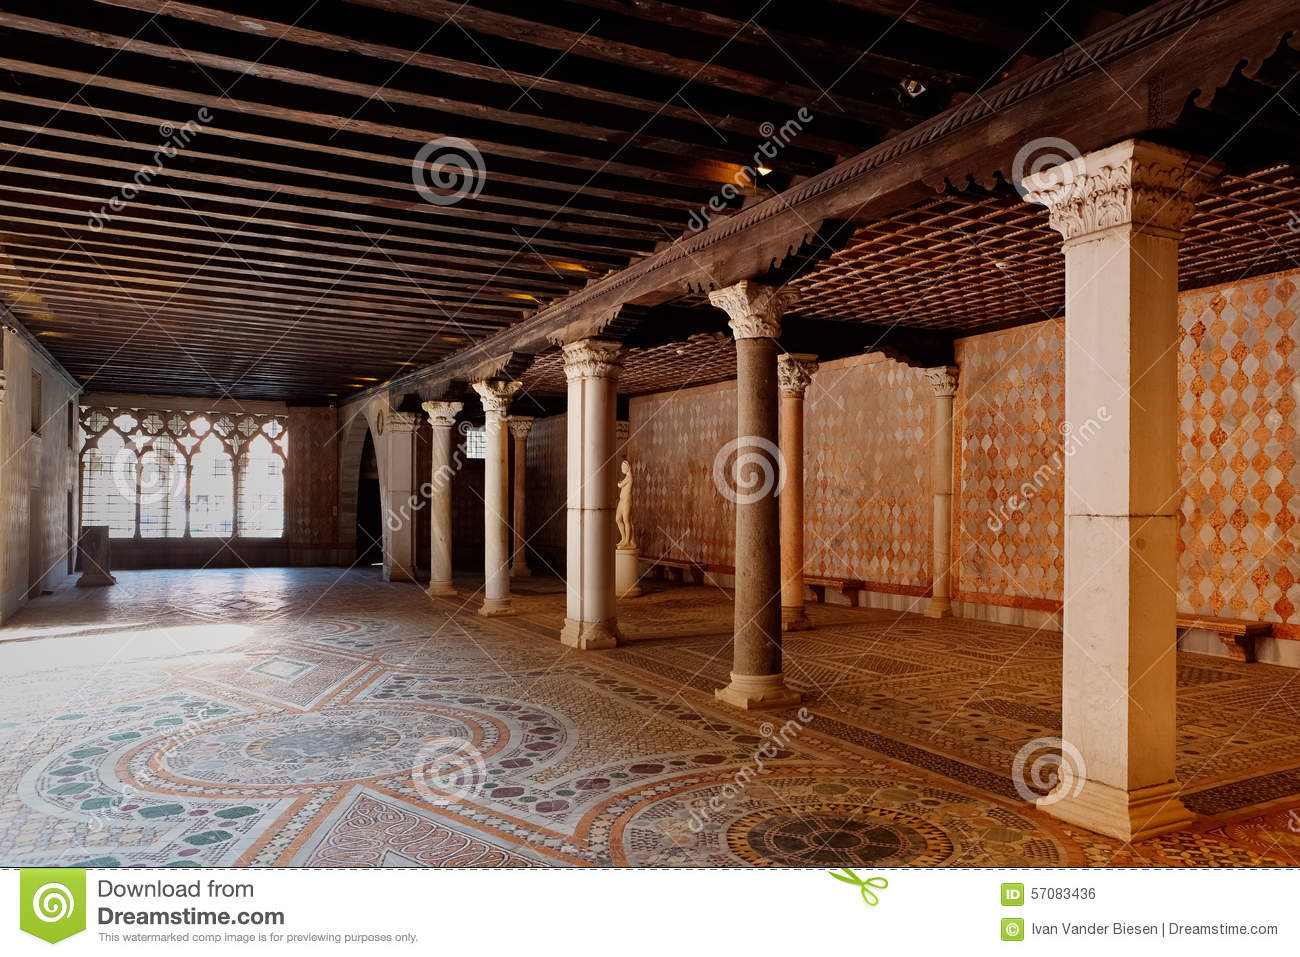 Awesome Download Storage Merchant House Ca Du0027Oro, Venice, Italy Stock Photo   Image